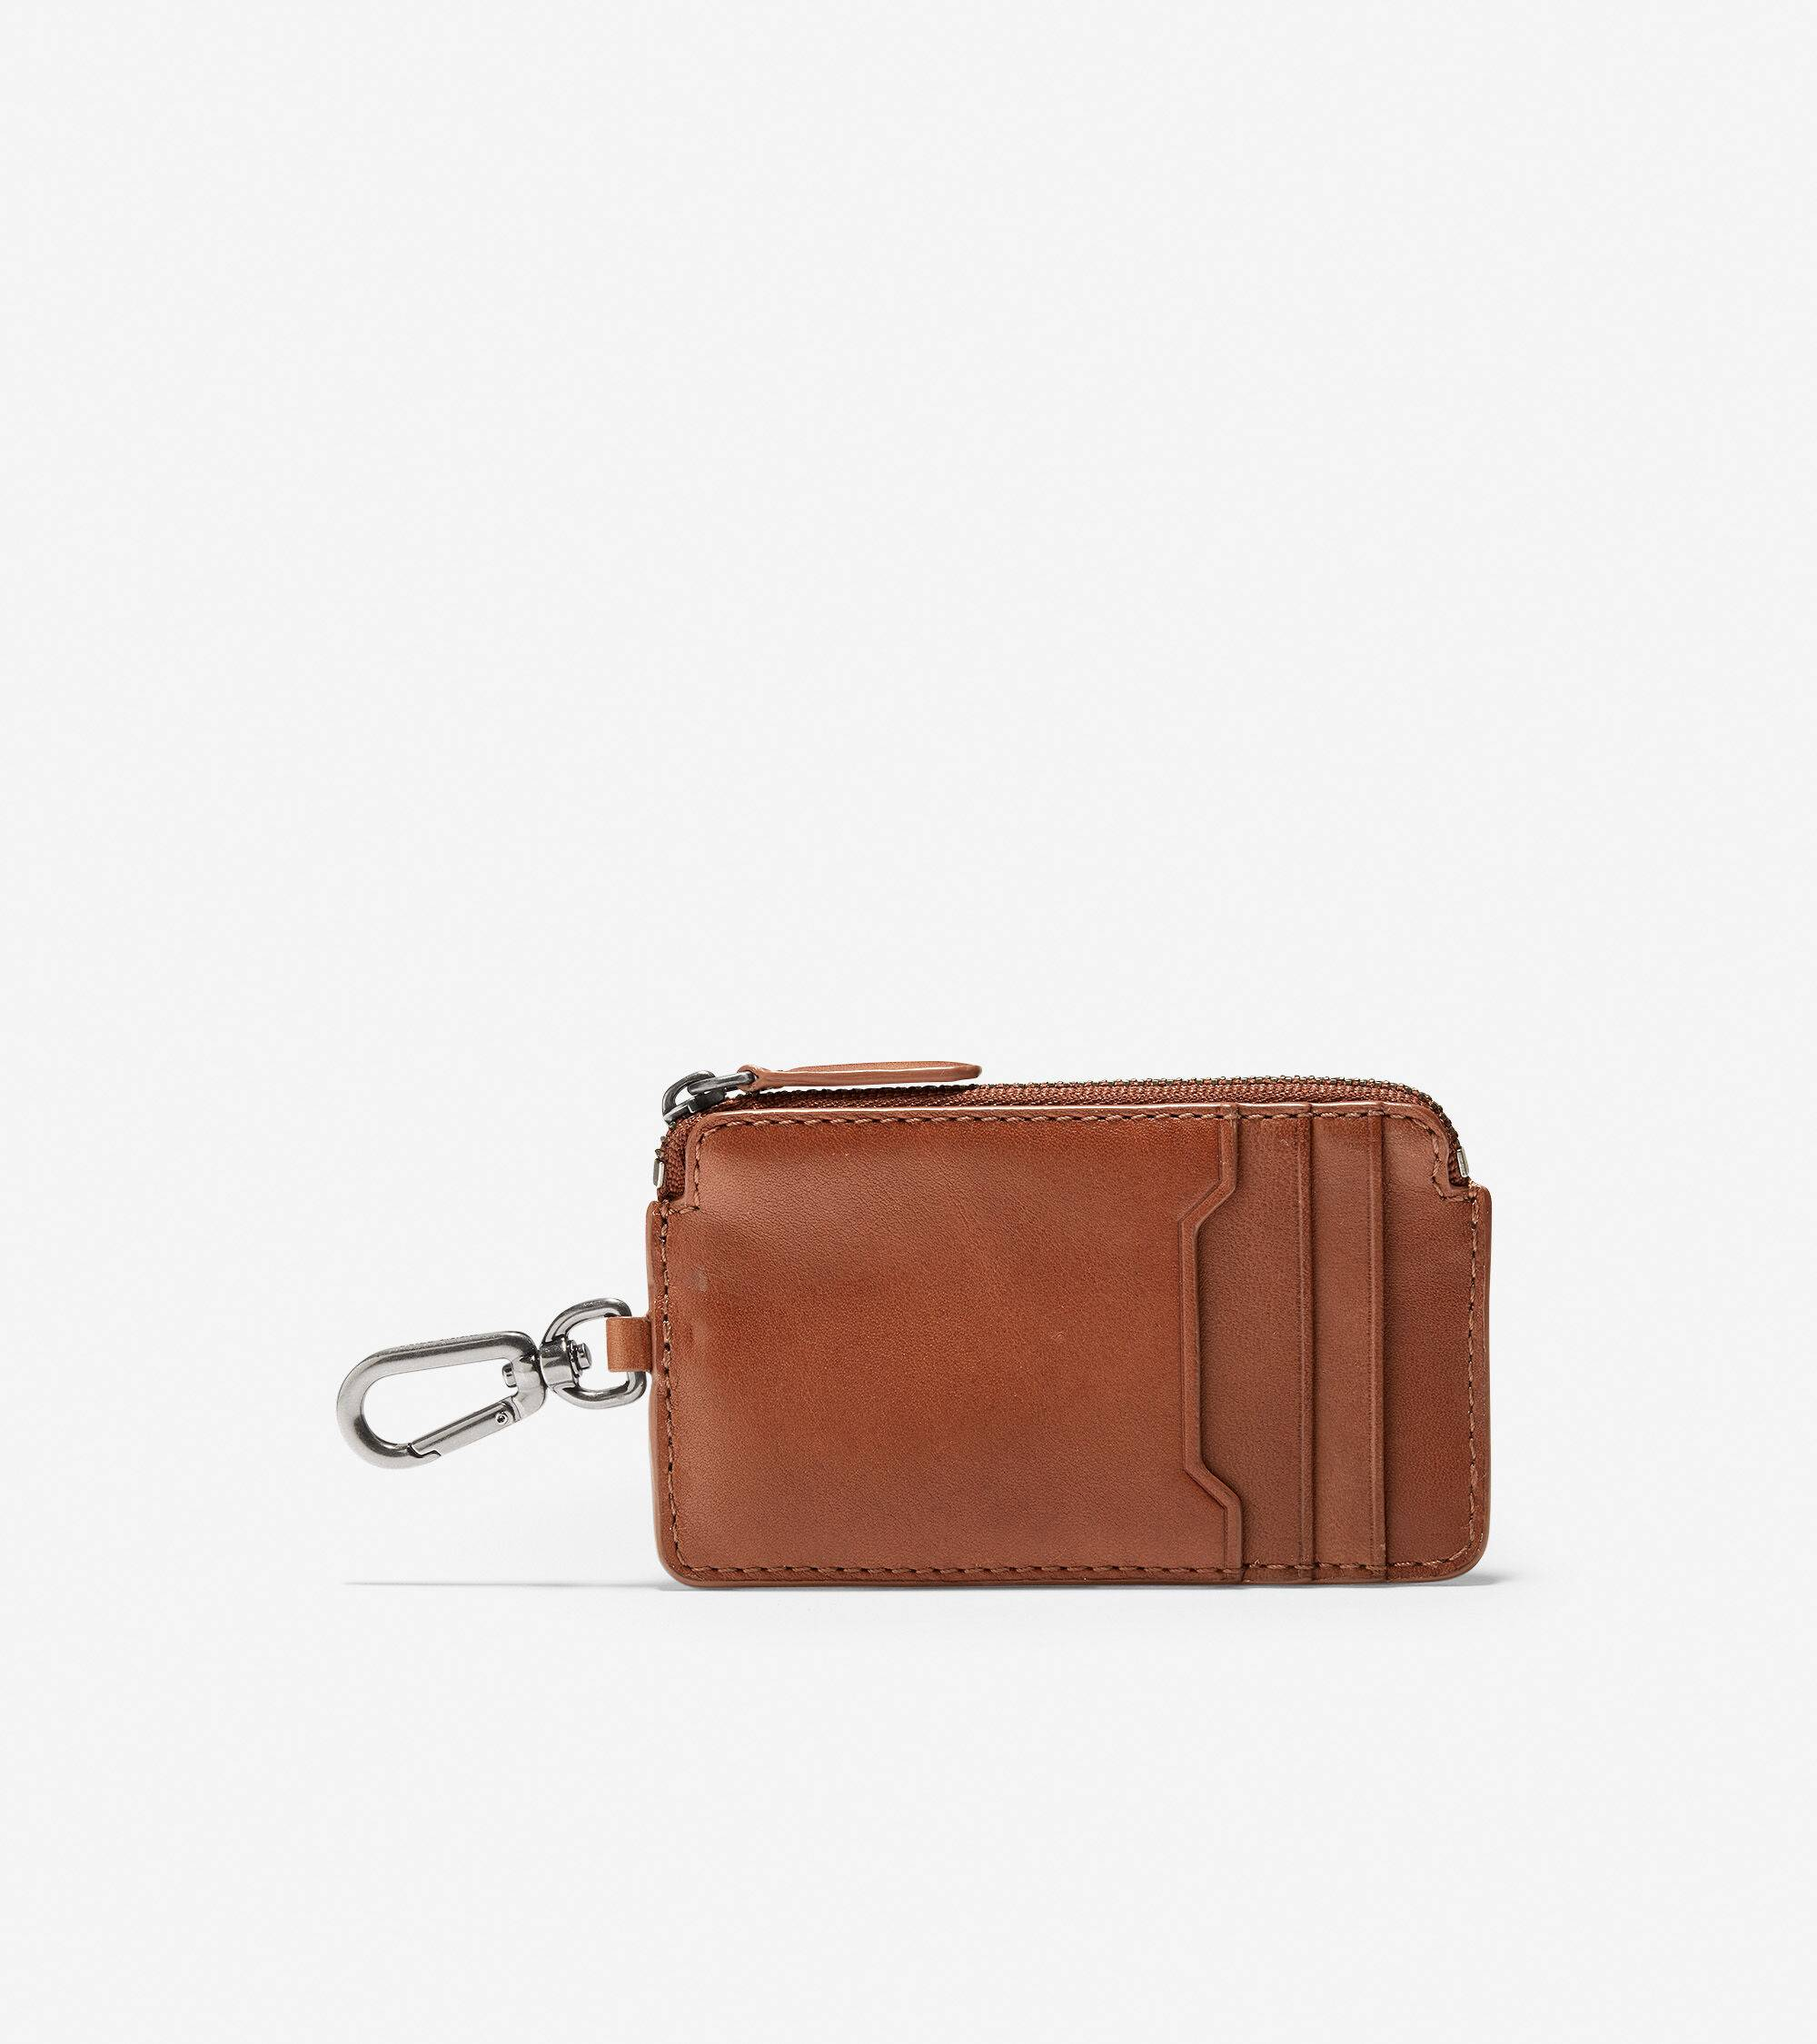 Cole Haan GRANDSERIES Leather Zip Card Case With Key Ring - Brown - Size: OSFA